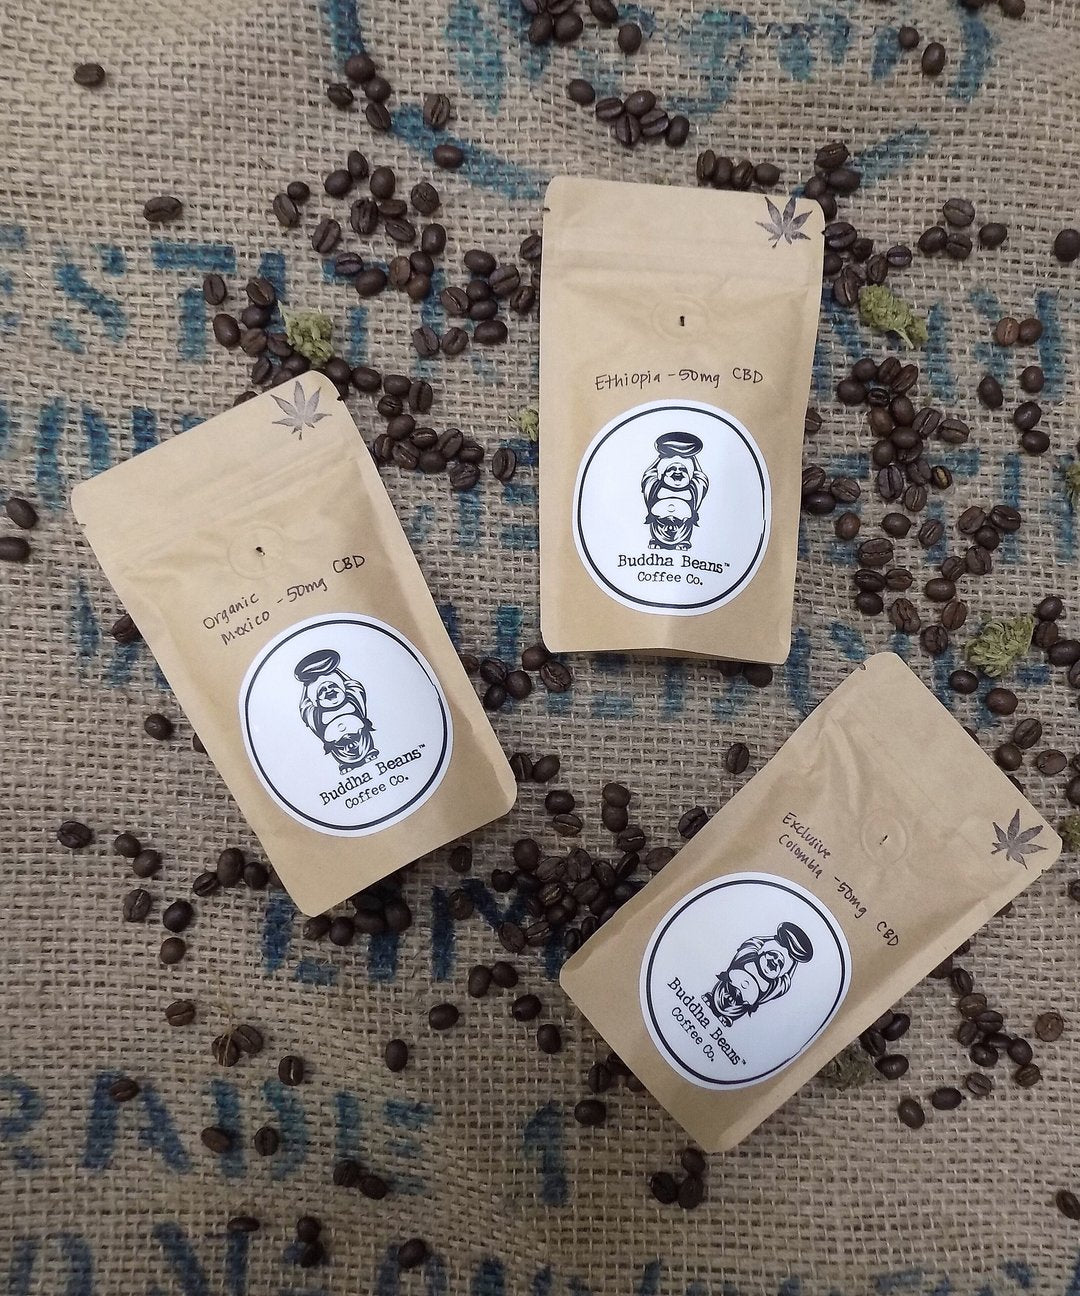 Buddha Beans CBD Coffee - Three Coffee Flight - Organic Mexico/Colombia/Ethiopia